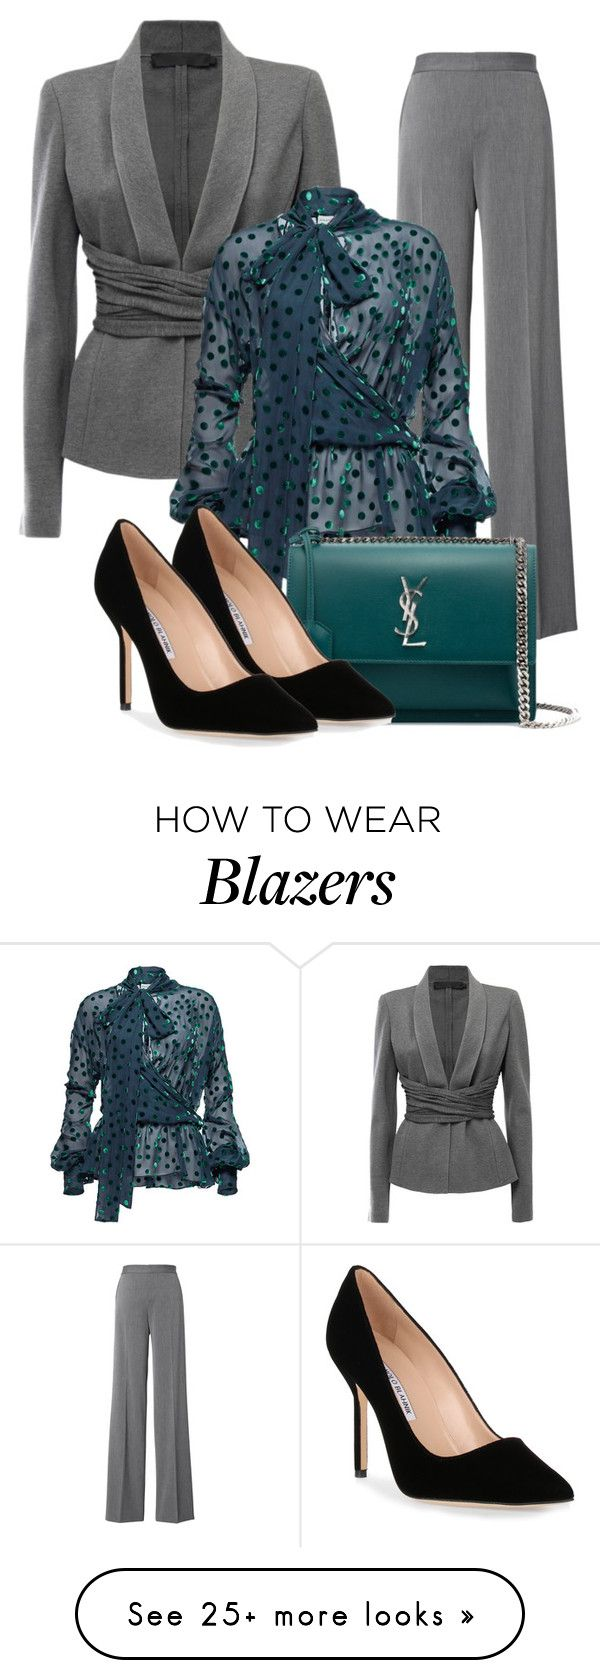 """grey blazer"" by atenaide86 on Polyvore featuring Donna Karan, Magda Butrym, Yves Saint Laurent and Manolo Blahnik"